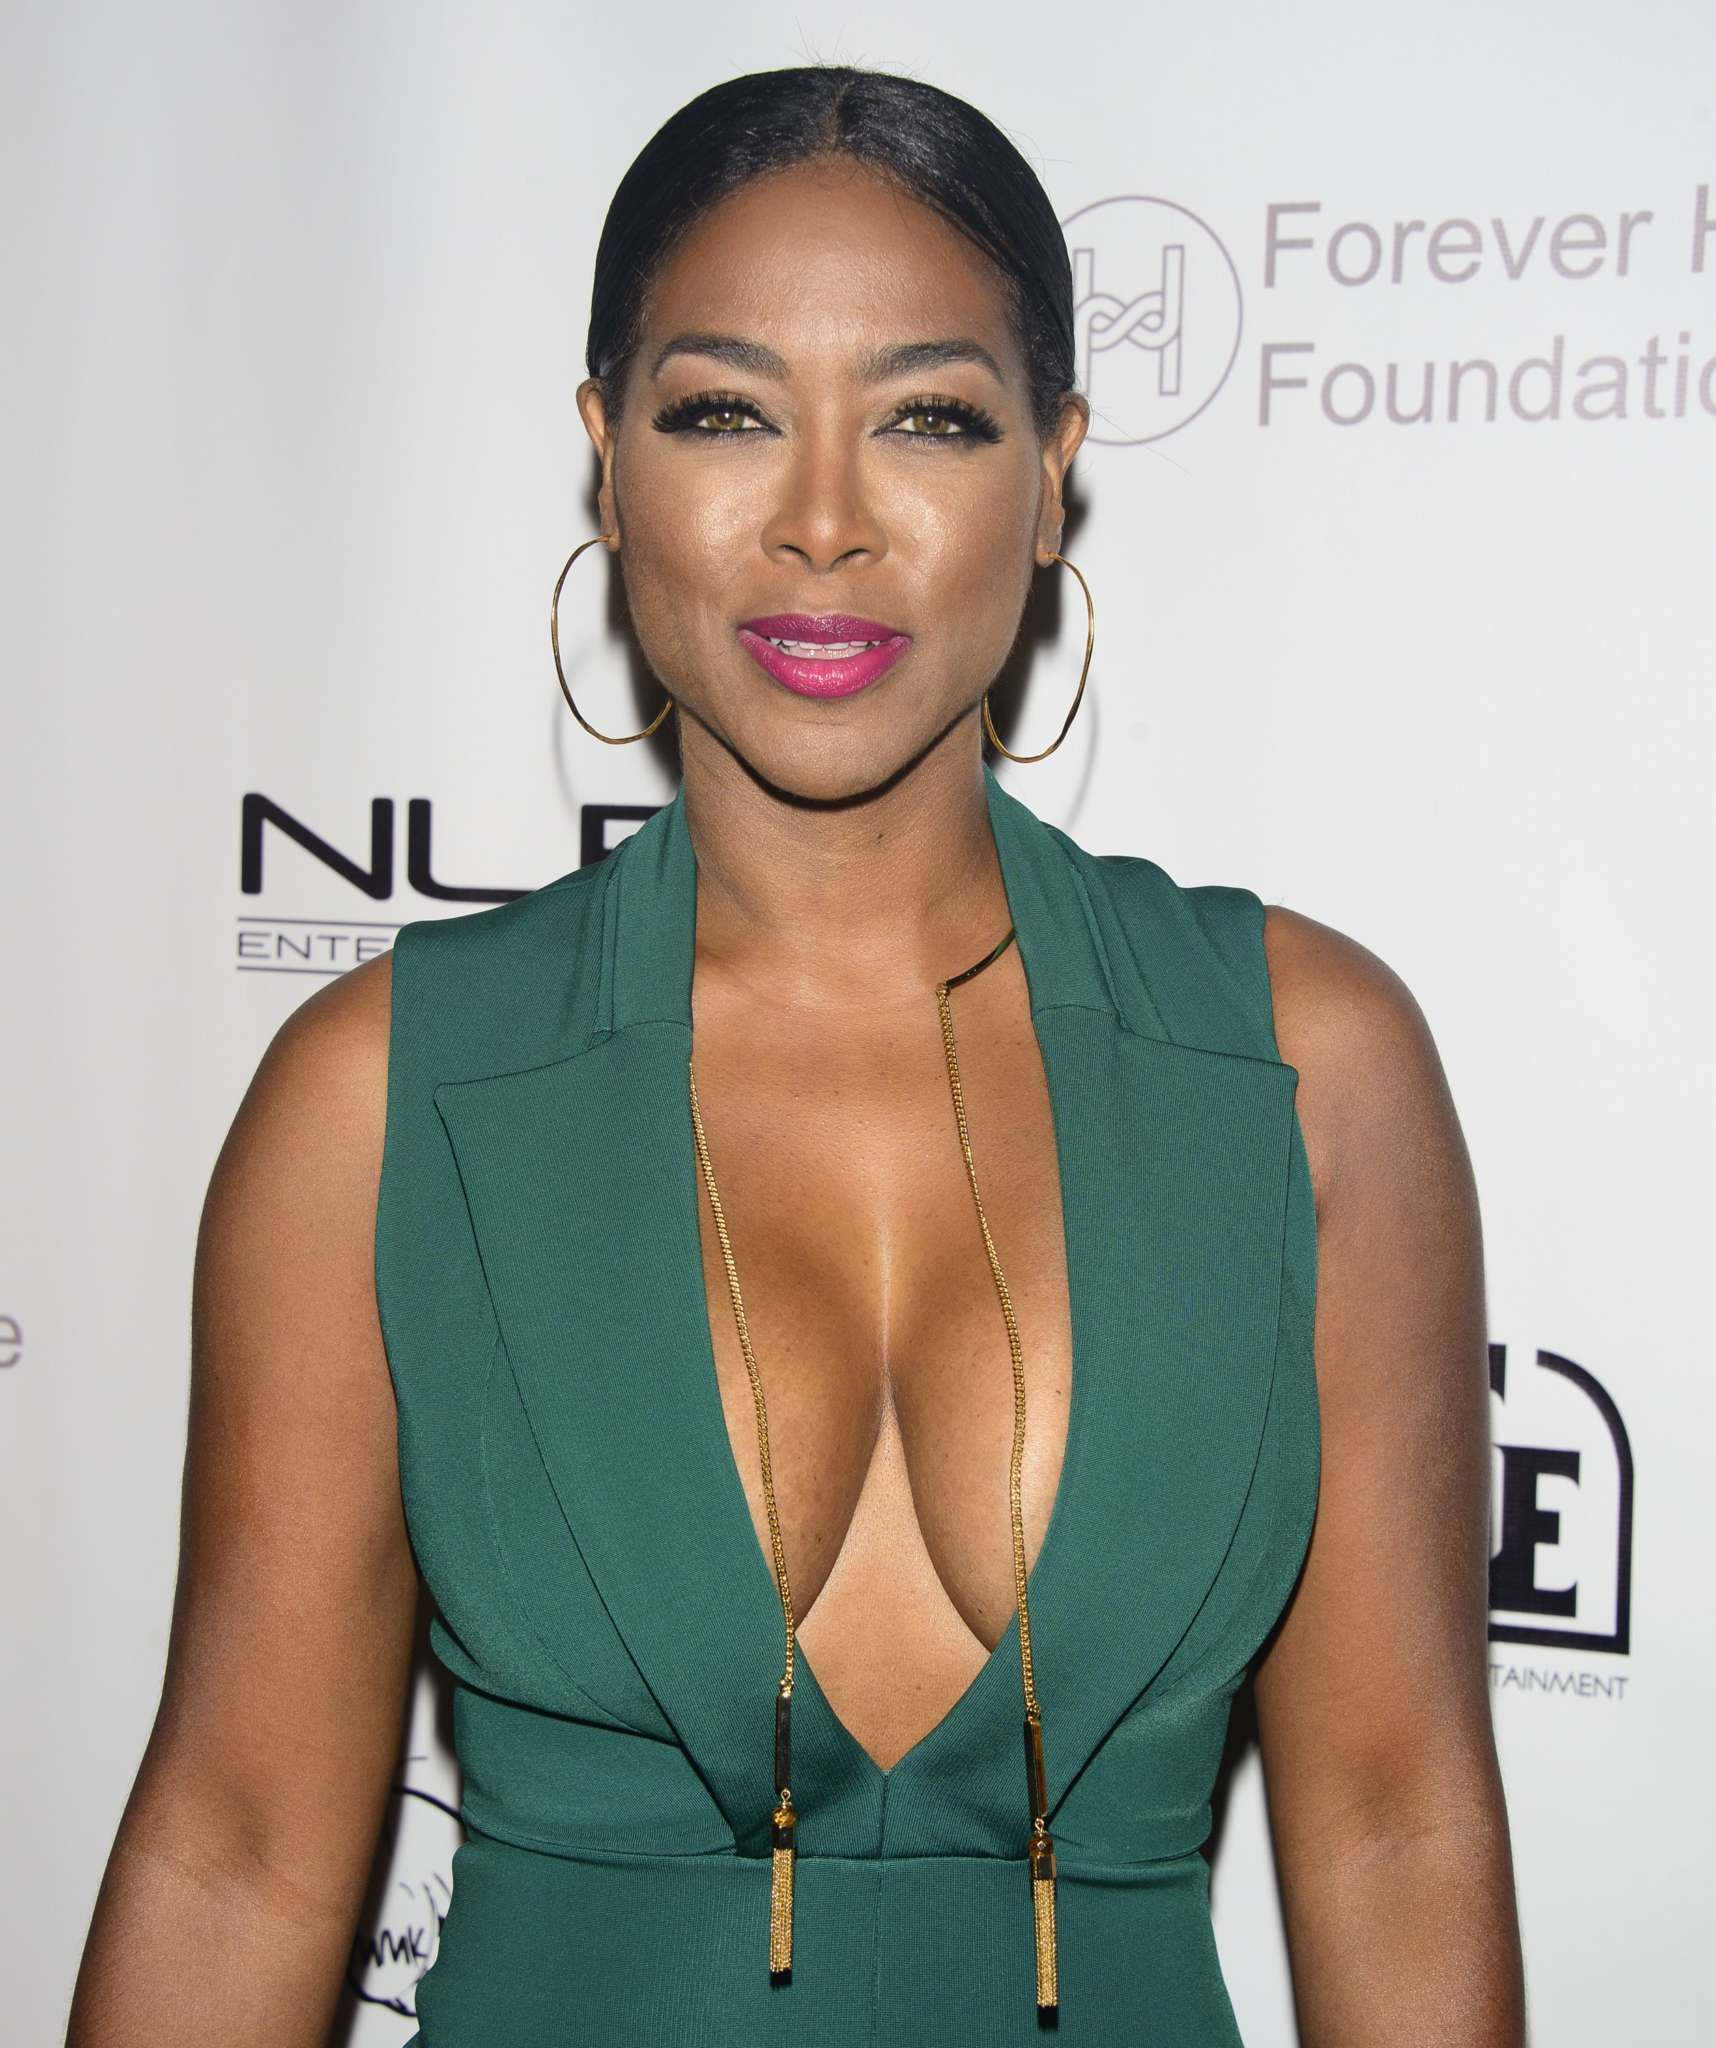 kenya-moore-shares-a-heavenly-photo-for-motivational-monday-check-out-the-peace-that-it-brings